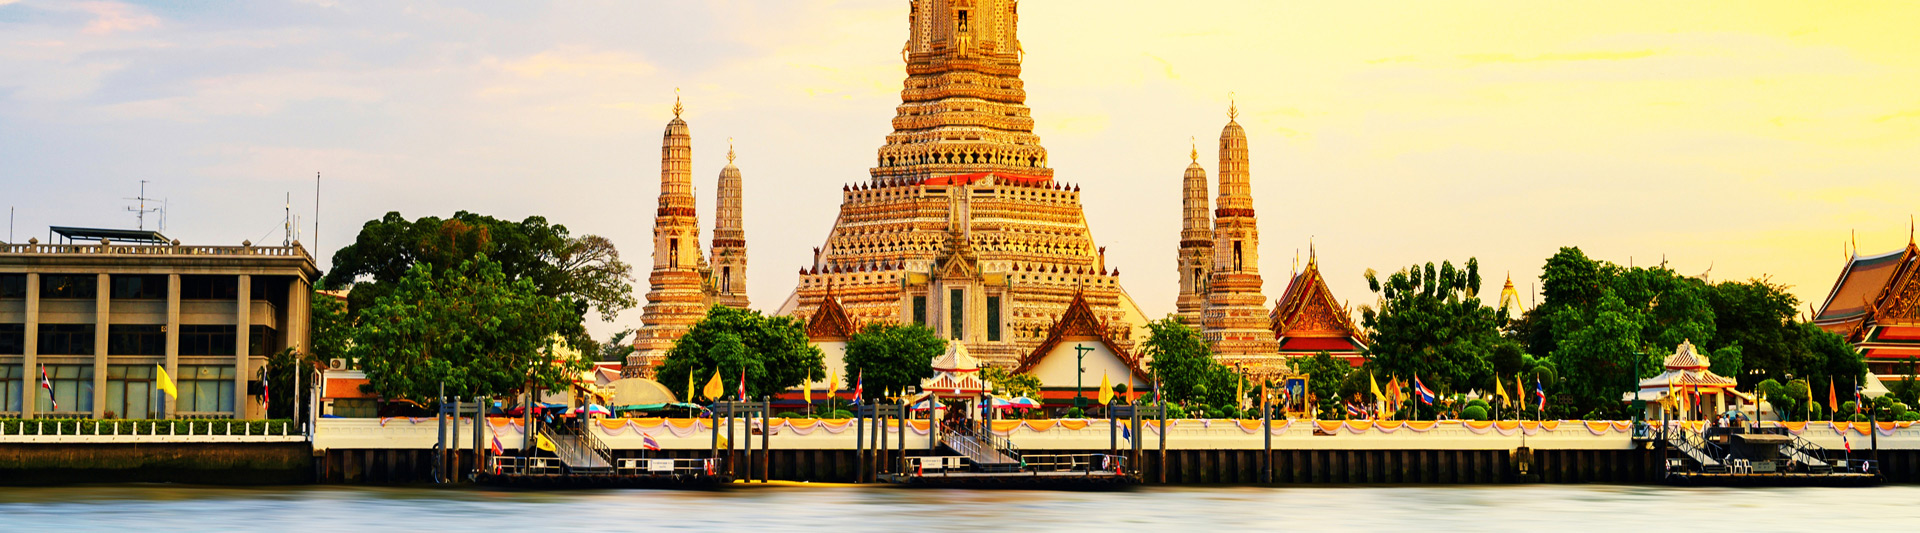 6 Famous Ancient Cities In Southeast Asia